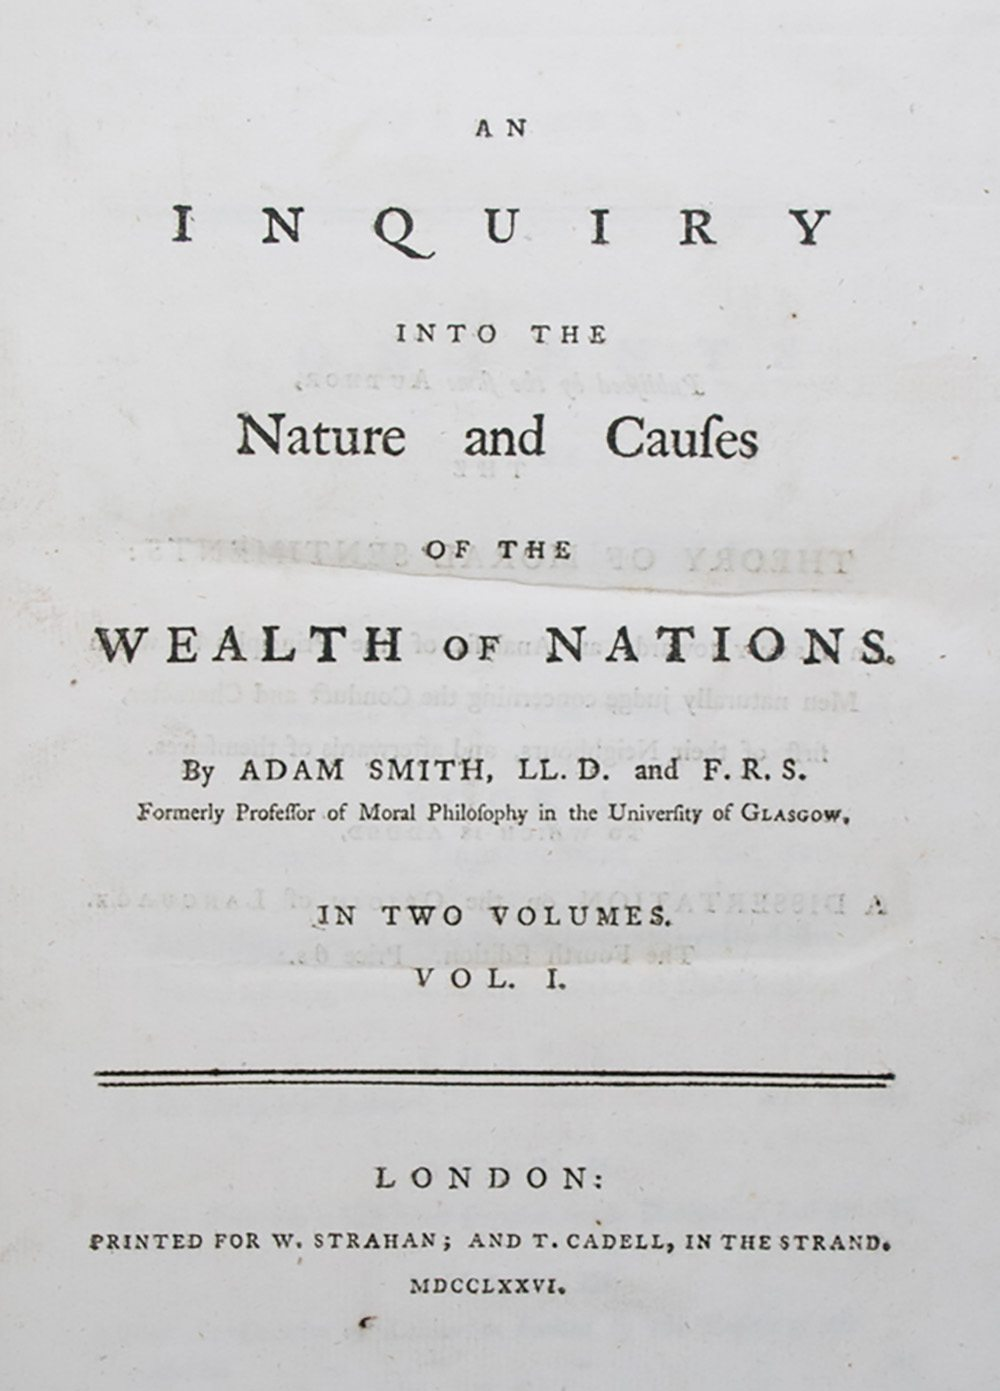 adam smith an inquiry into the He used three topics to classify this title within his own subject categories:   adam smith, an inquiry into the nature and causes of the wealth of nations.